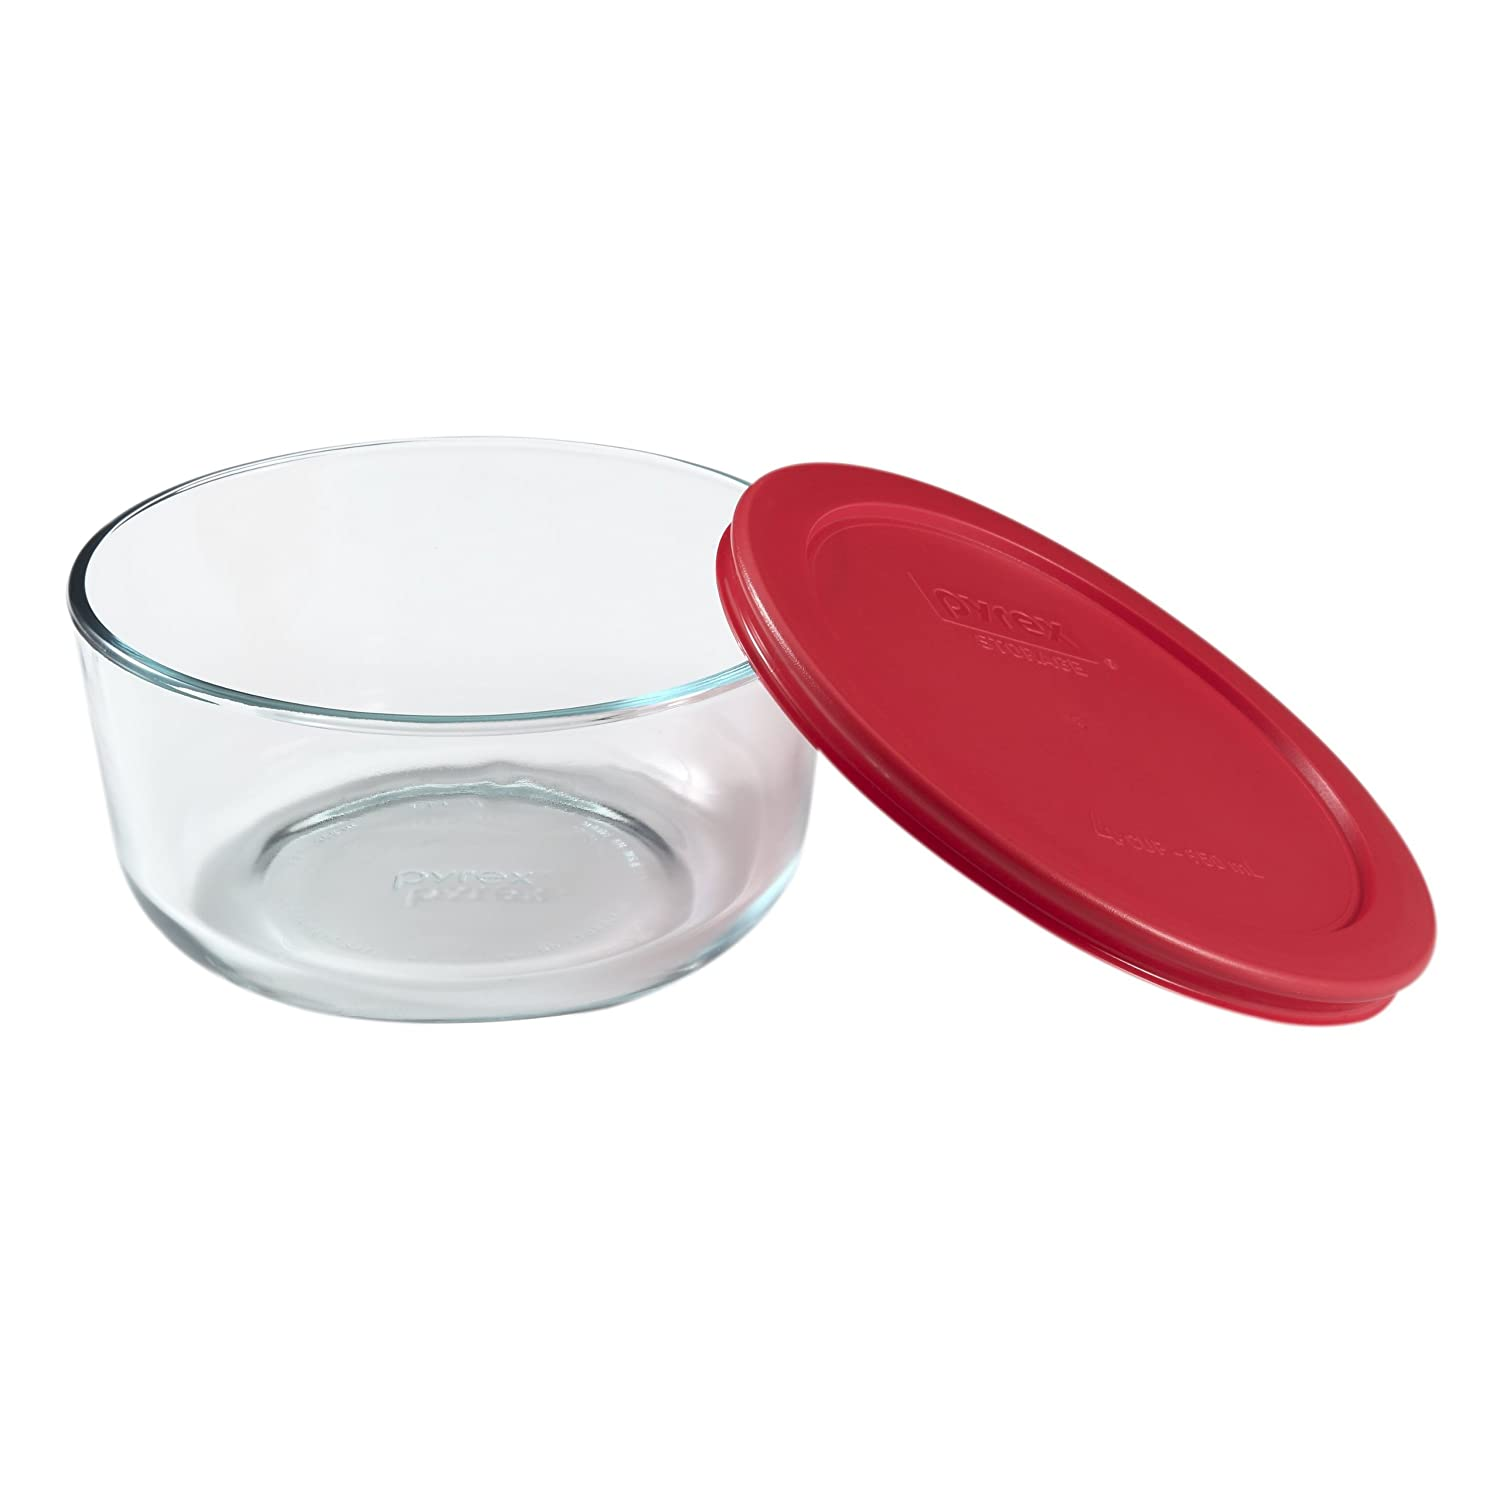 Pyrex Simply Store Glass Round Food Container with Red Lid (4-Cup)